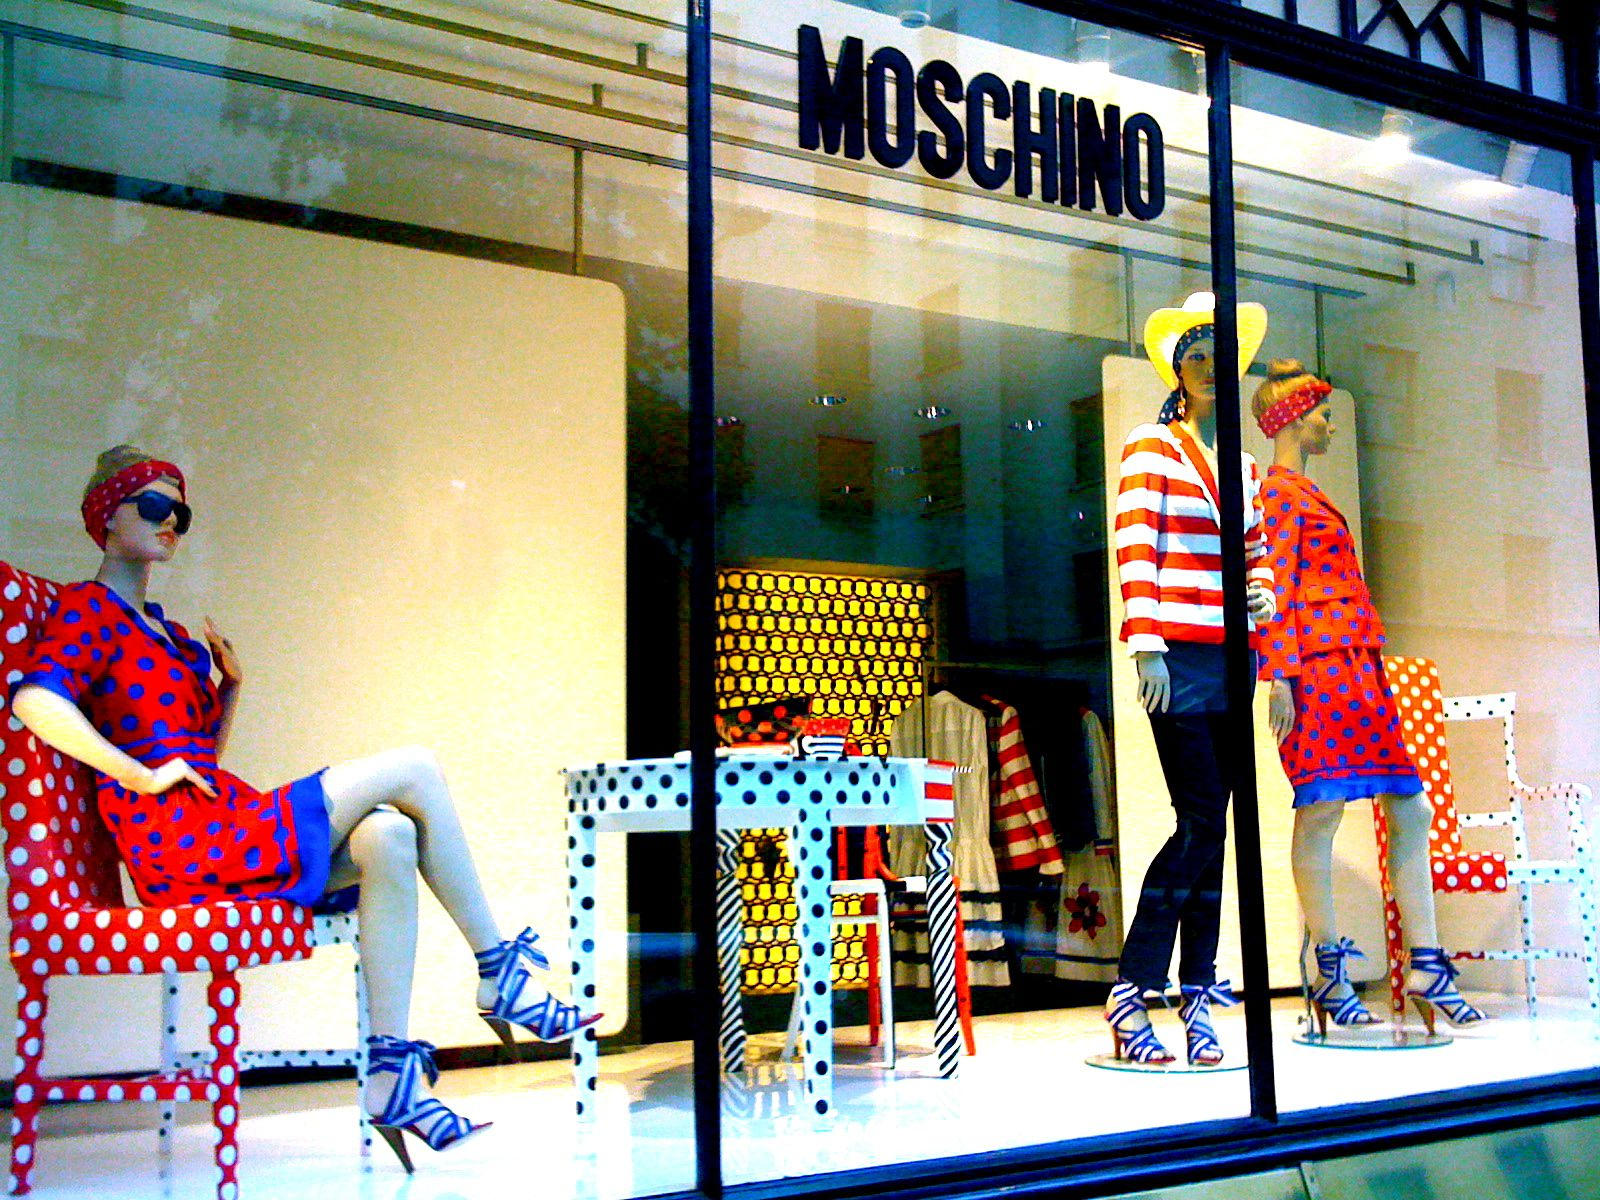 Moschino window display